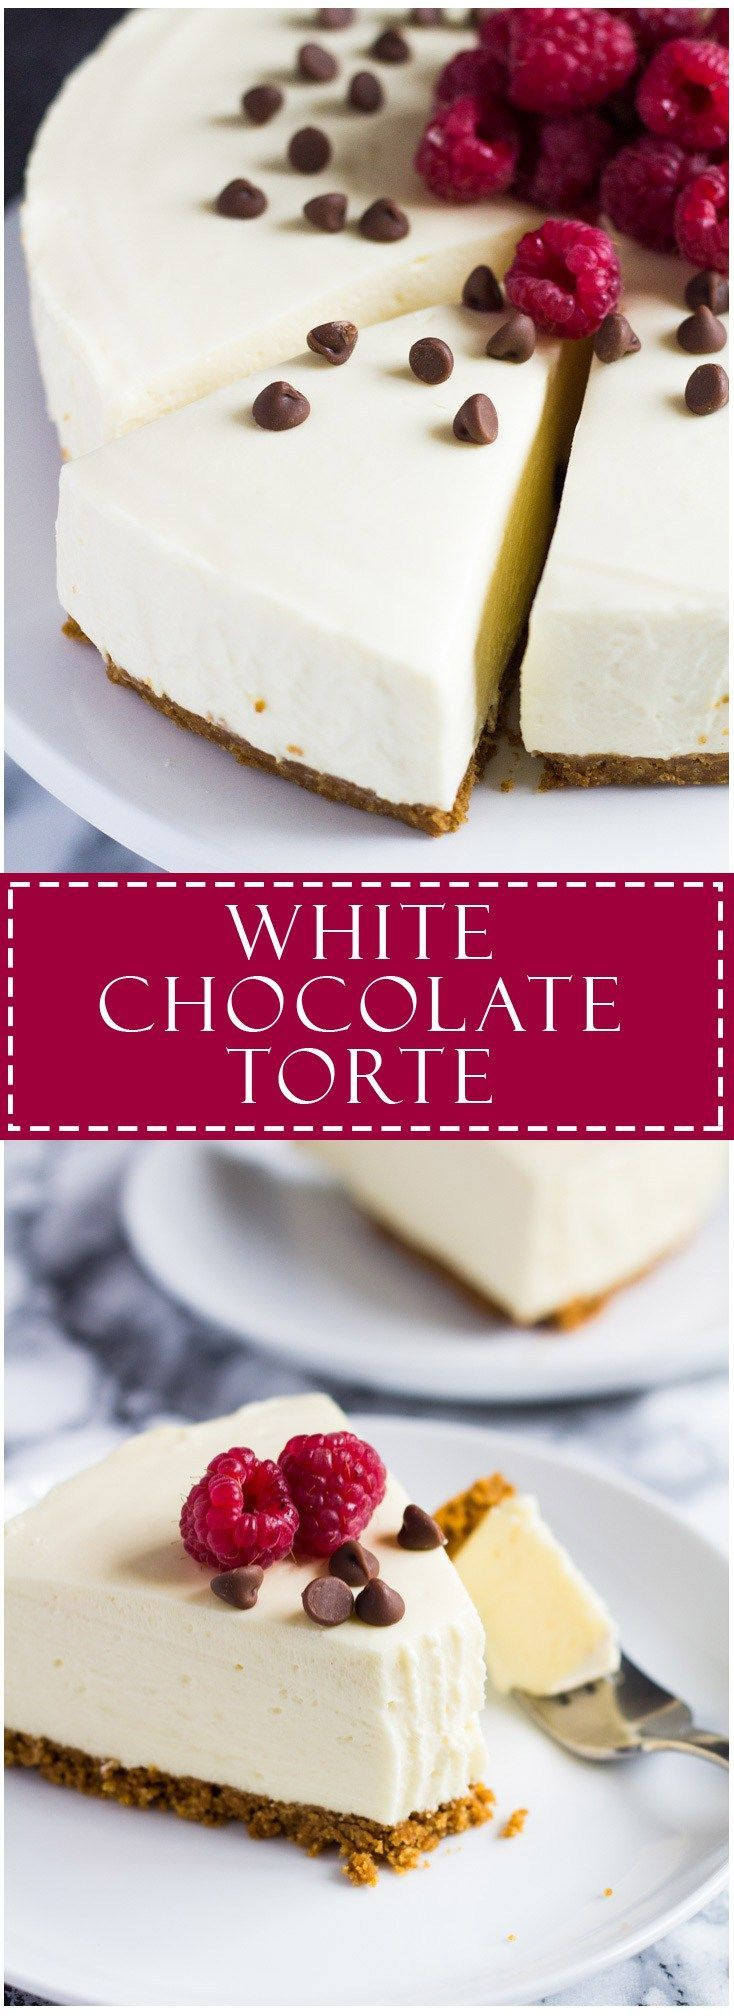 White Chocolate Torte recipe | Marsha's Baking Addiction - thos looks like a gorgeous dessert!